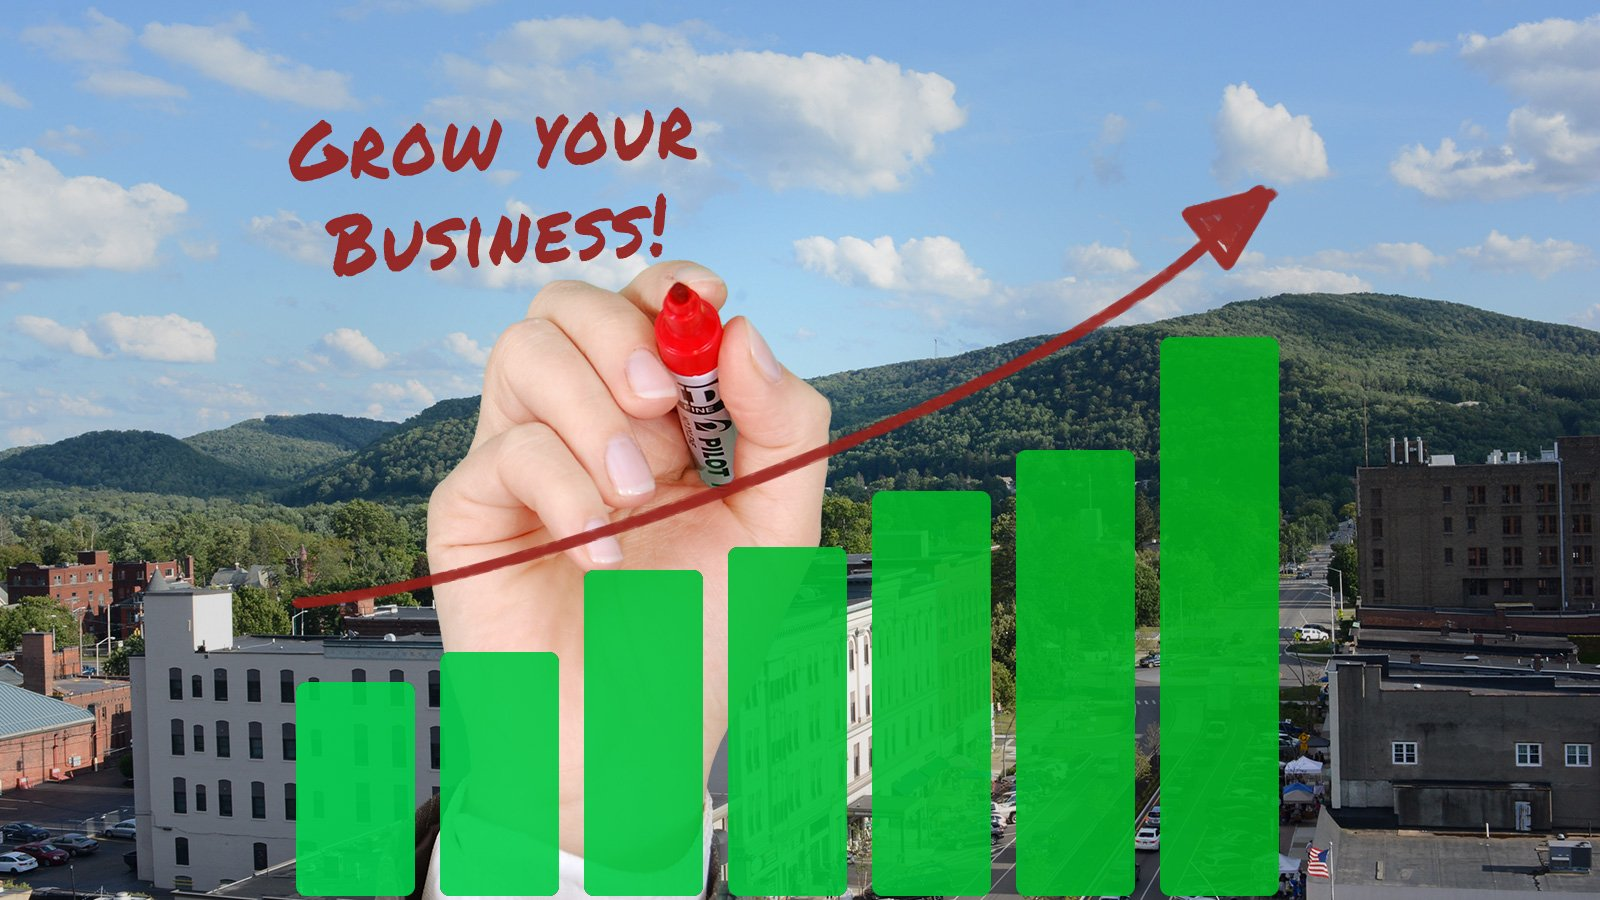 Grow your business!